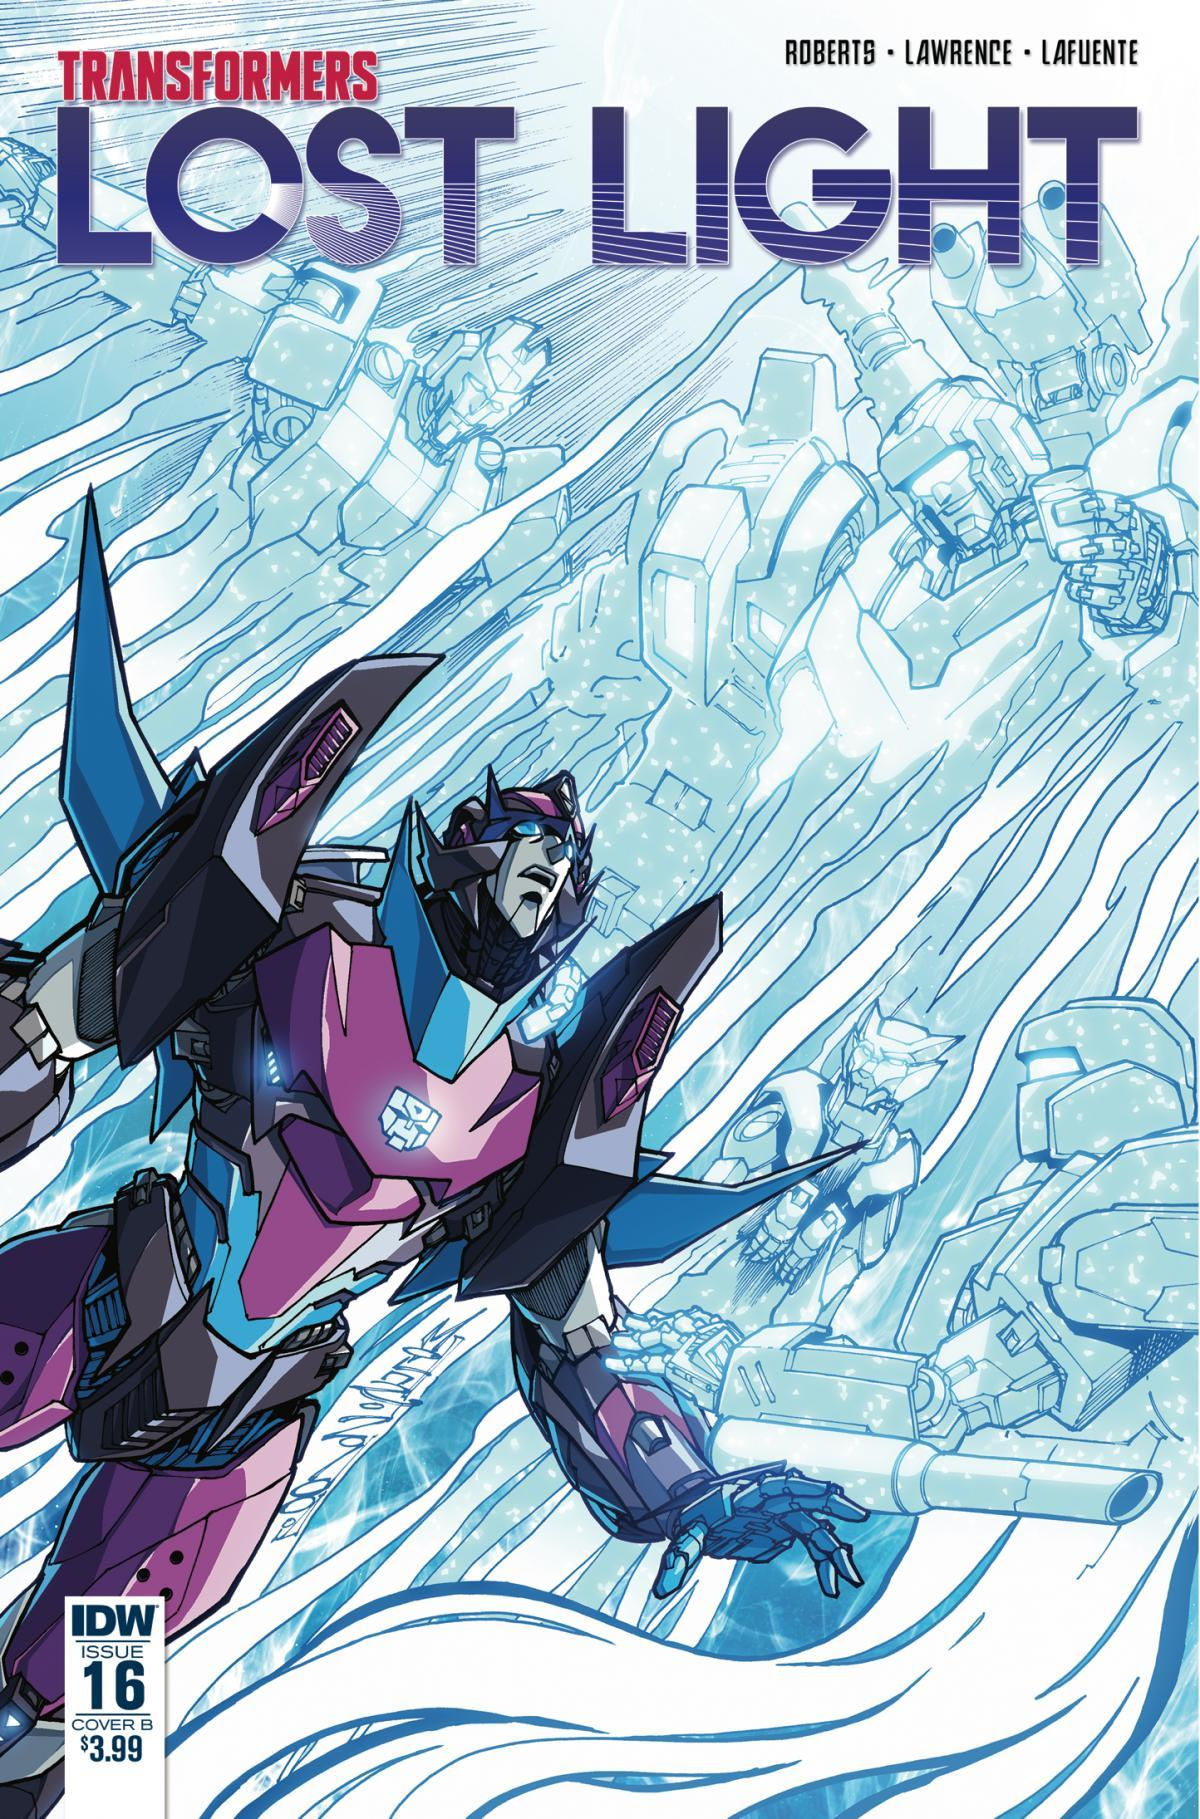 Transformers News: James Roberts on Ending the IDW Transformers: Lost Light Comics